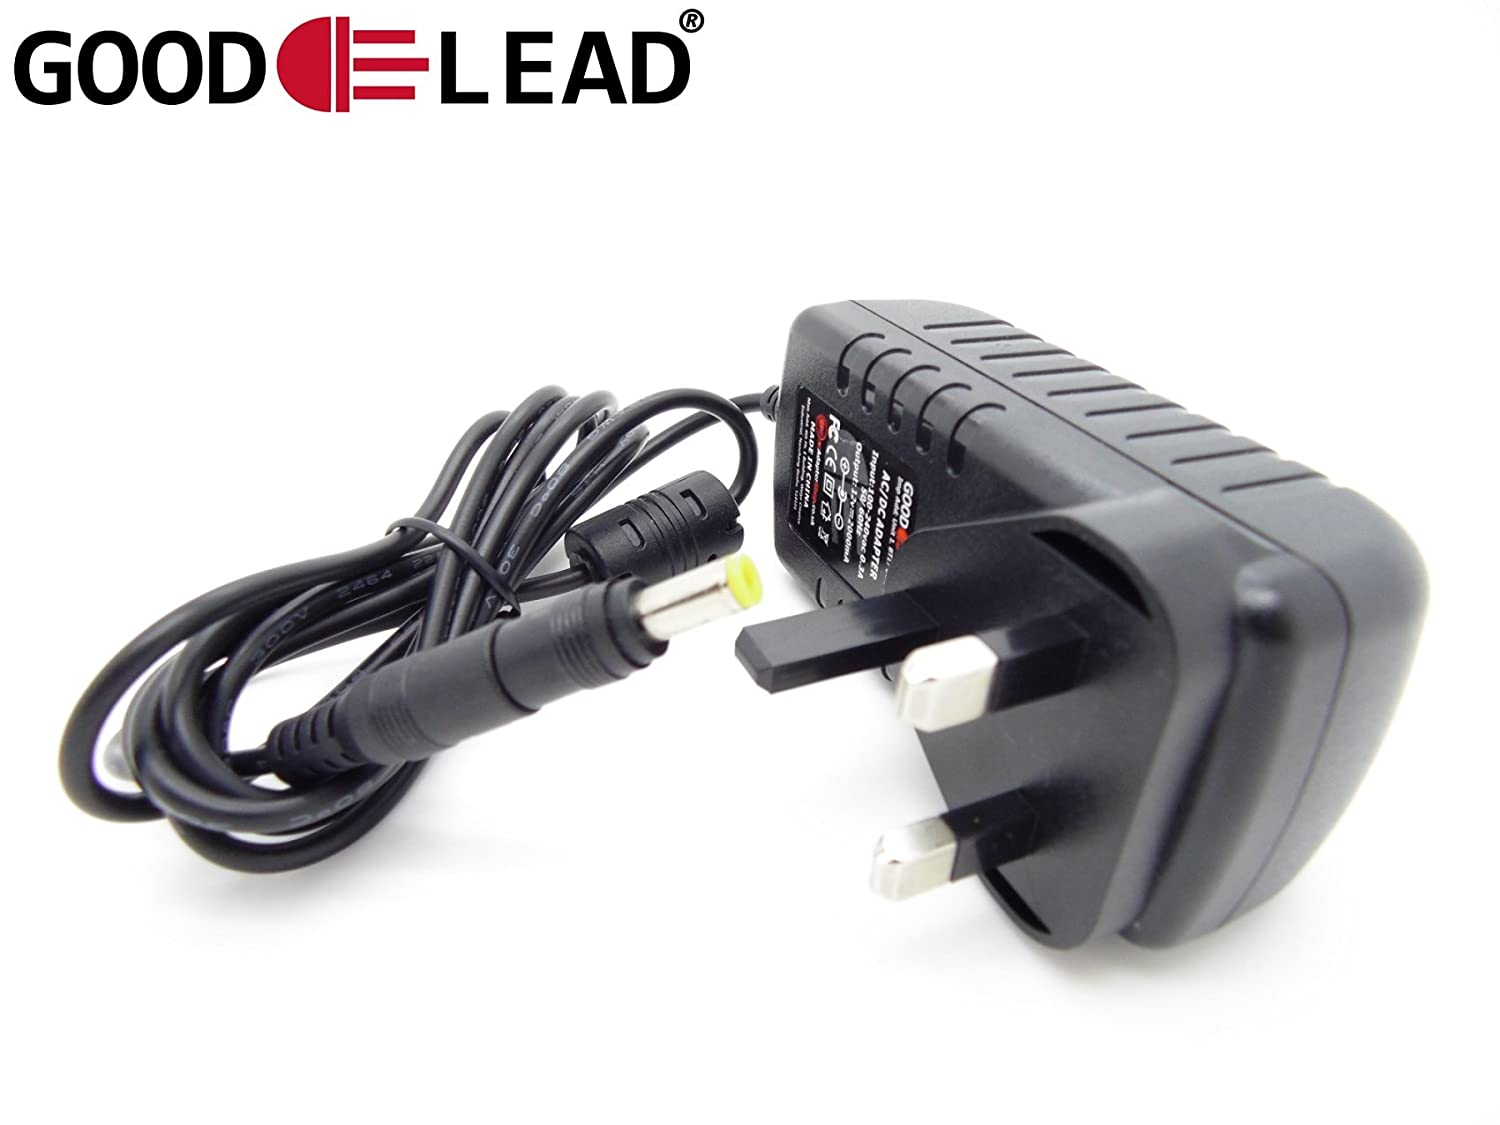 GOOD LEAD Yamaha PA 130A Compatible Part 12V UK Home Power Supply Adapter Plug UK SELLER